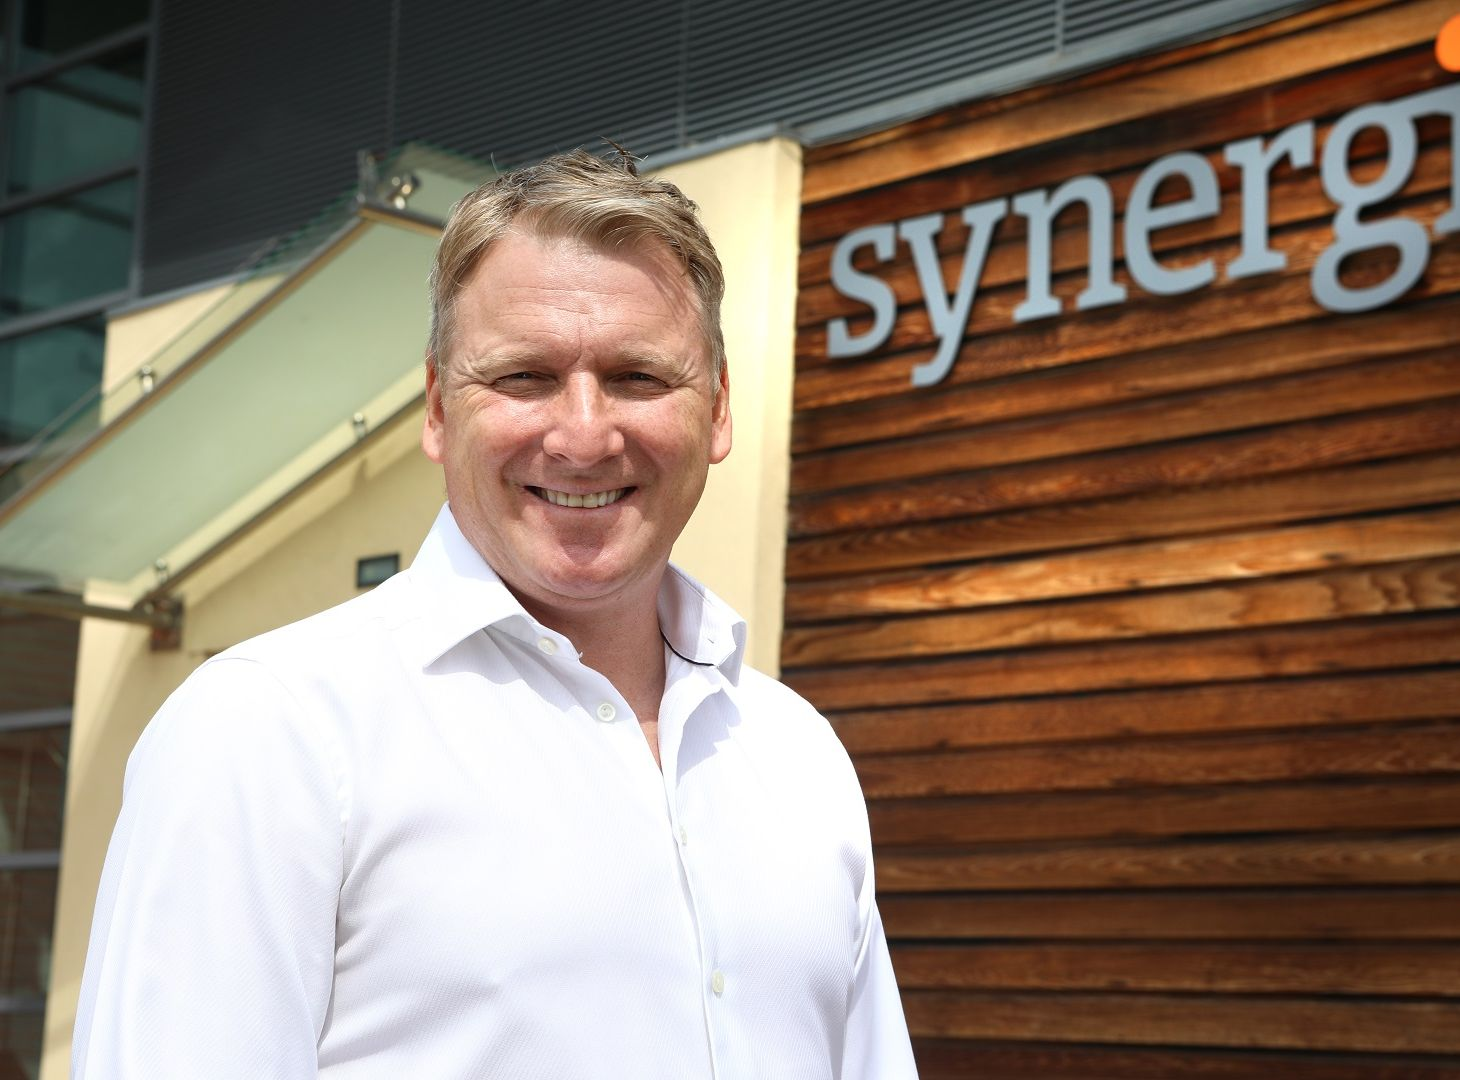 Image of Peter Joynson, outside of the Synergi Offices